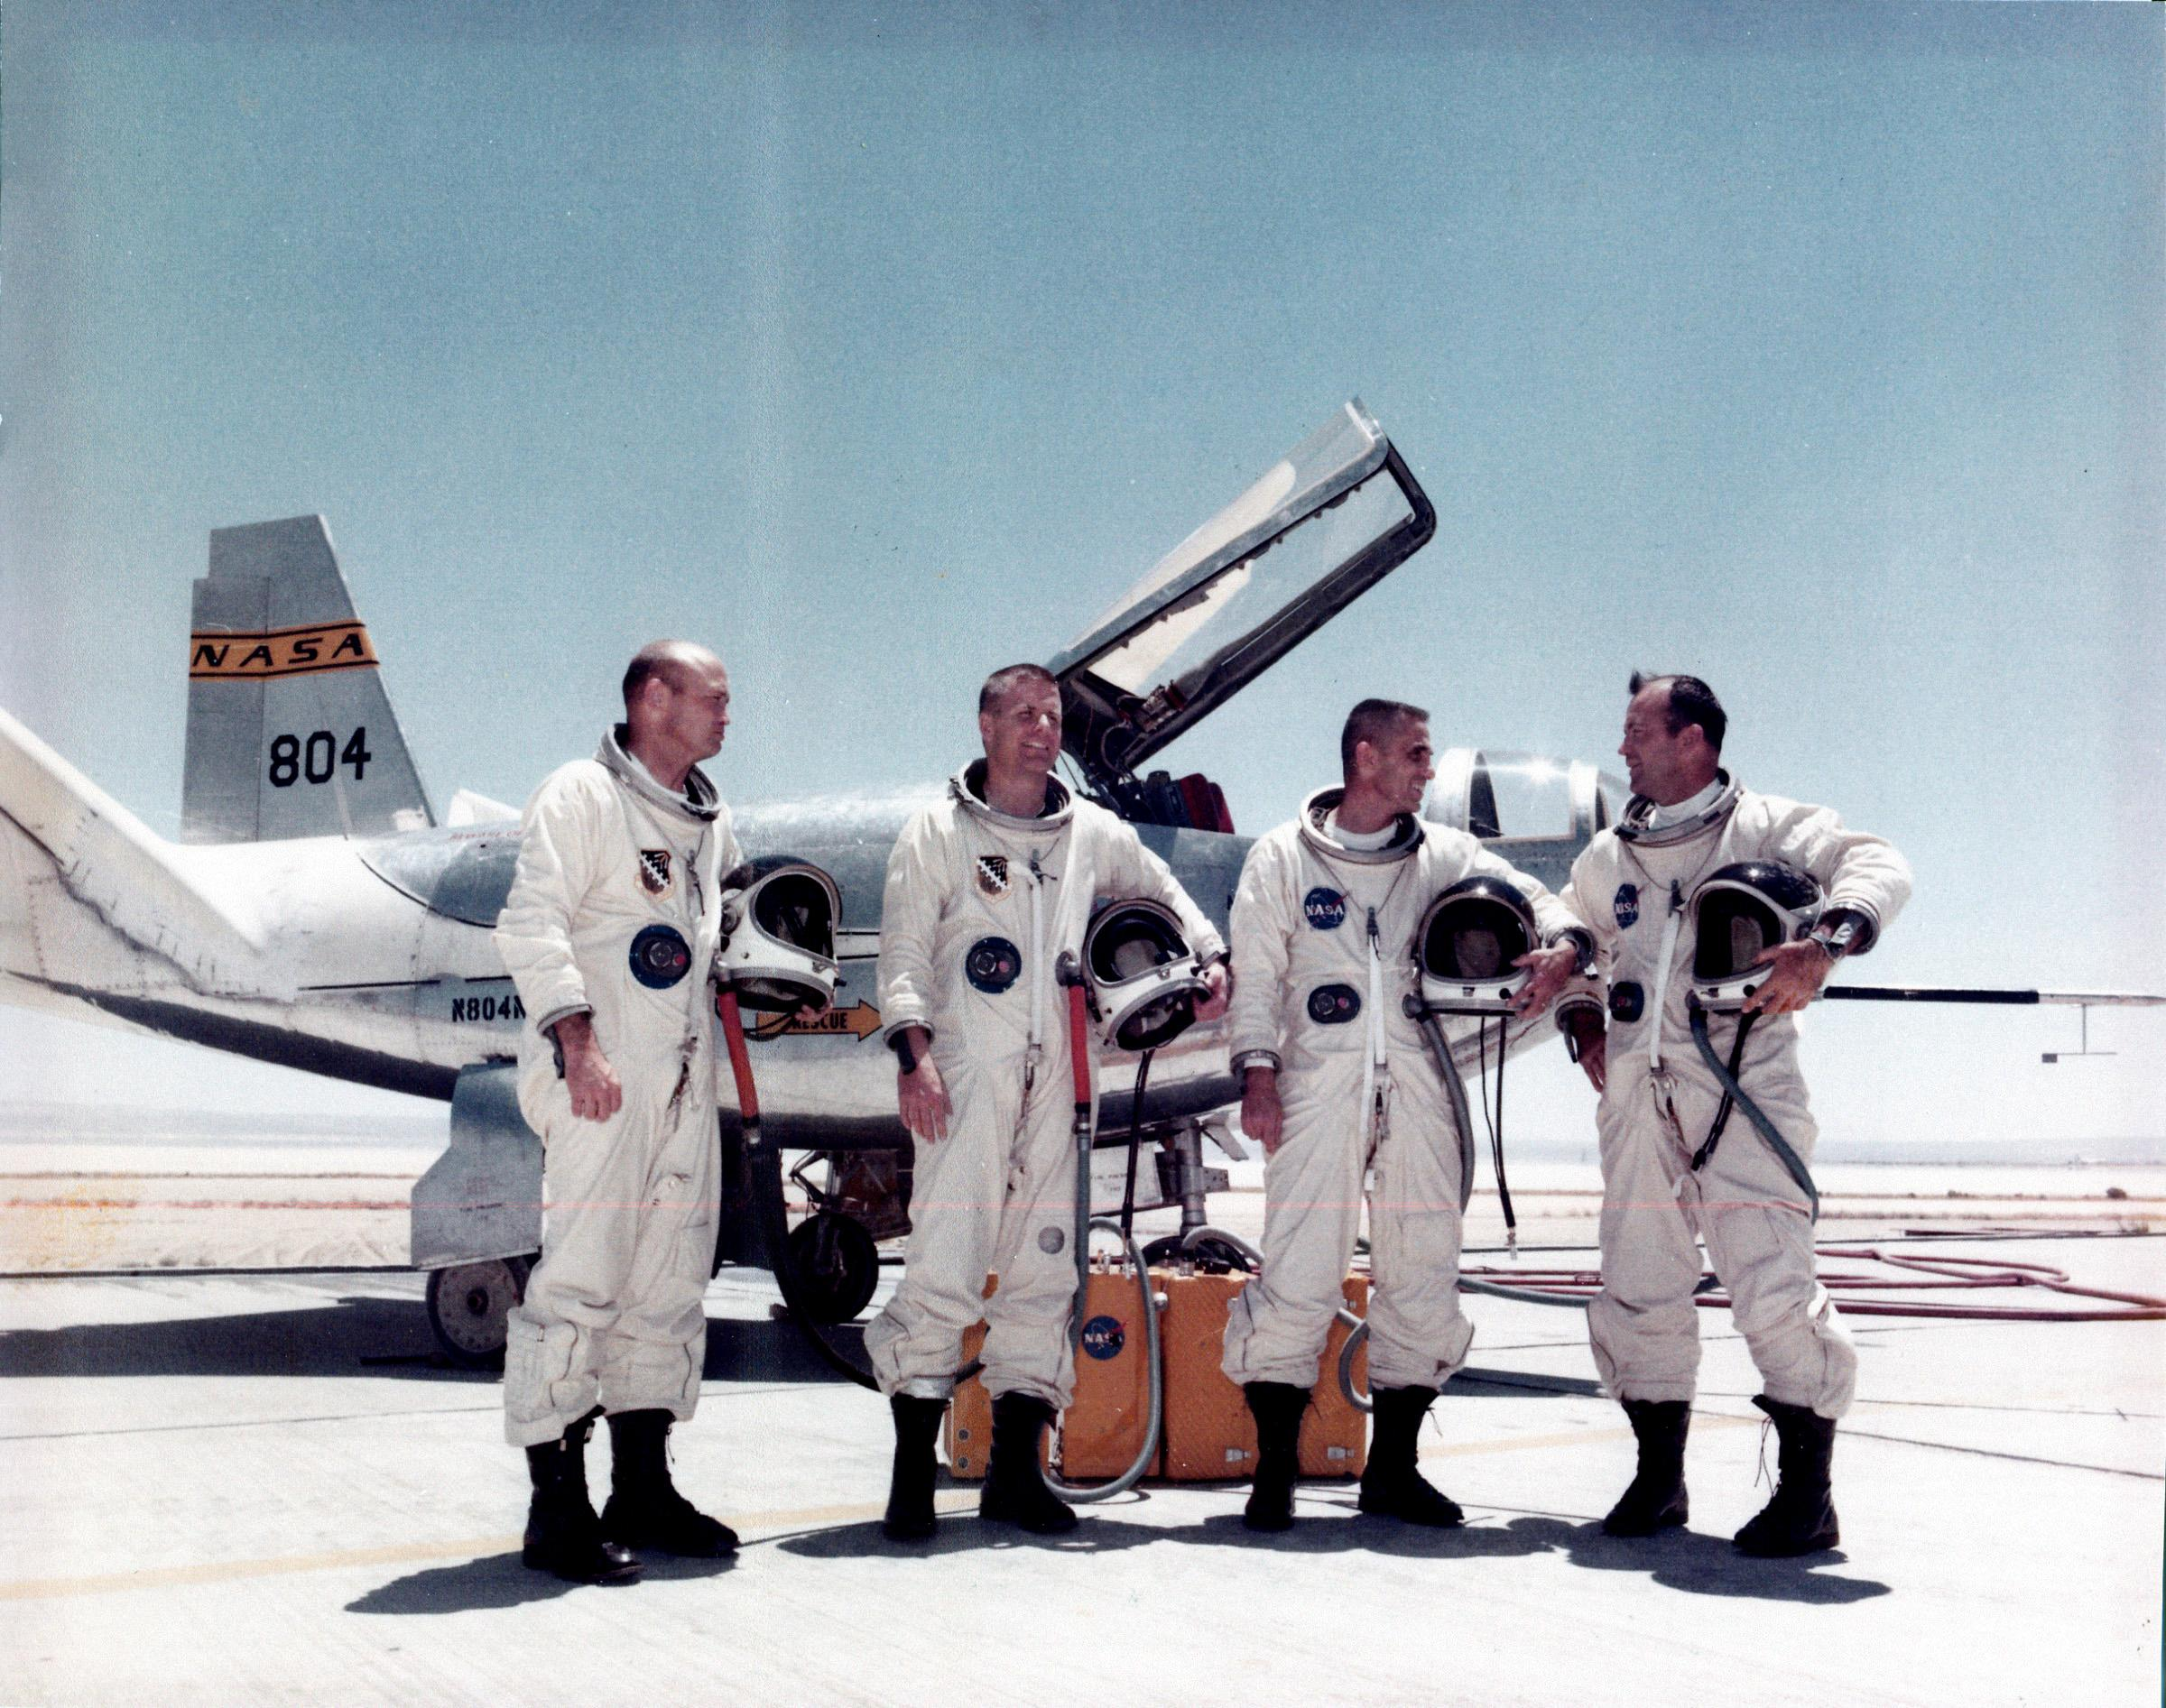 299998main_lifting_body_pilots_full Jerry Gentry, Pete Hoag, John Manke and Bill Dana are lined up by the HL-10 lifting body aircraft.